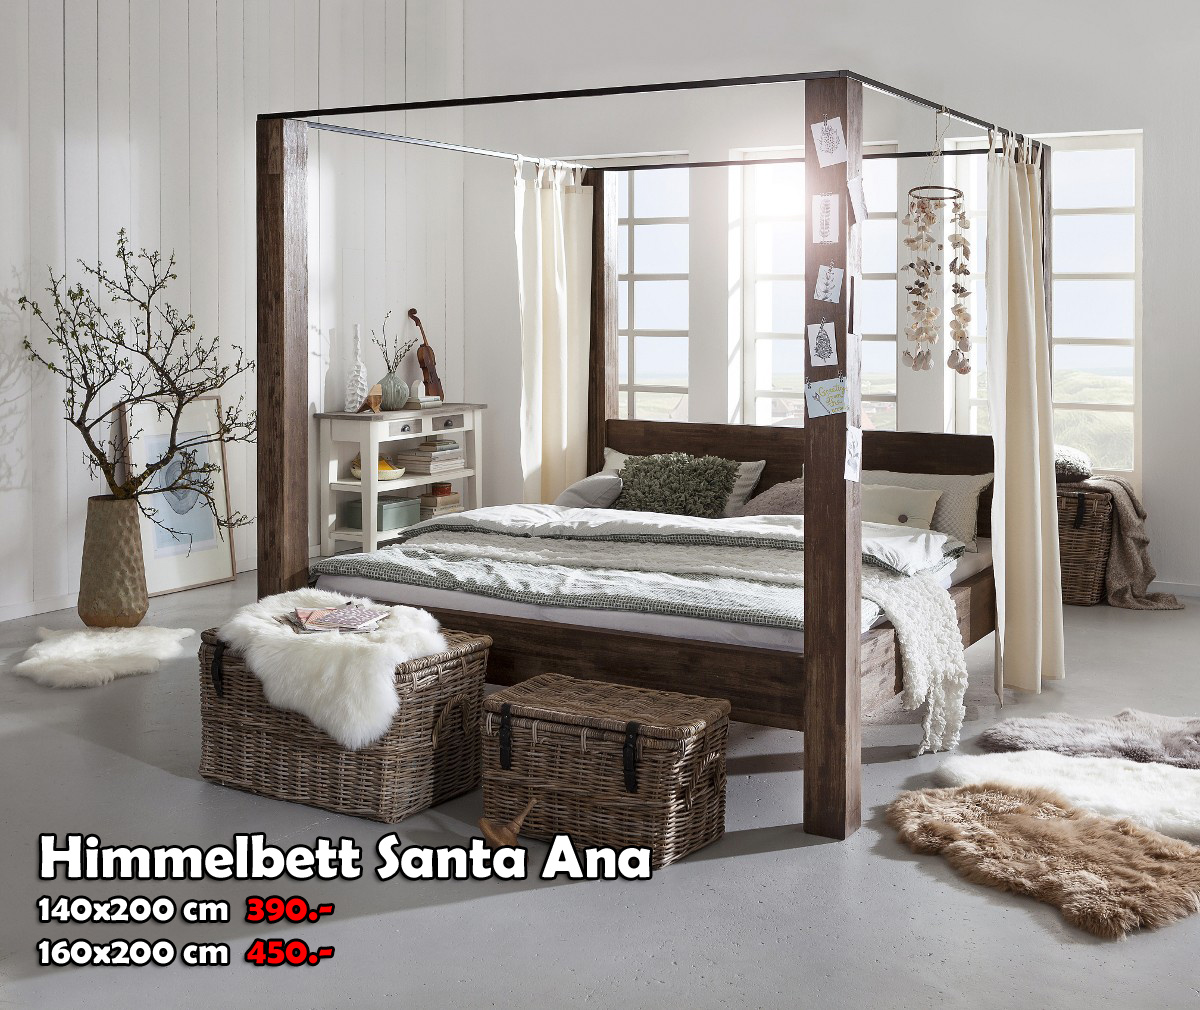 g nstige m bel online bestellen himmelbett santa ana. Black Bedroom Furniture Sets. Home Design Ideas